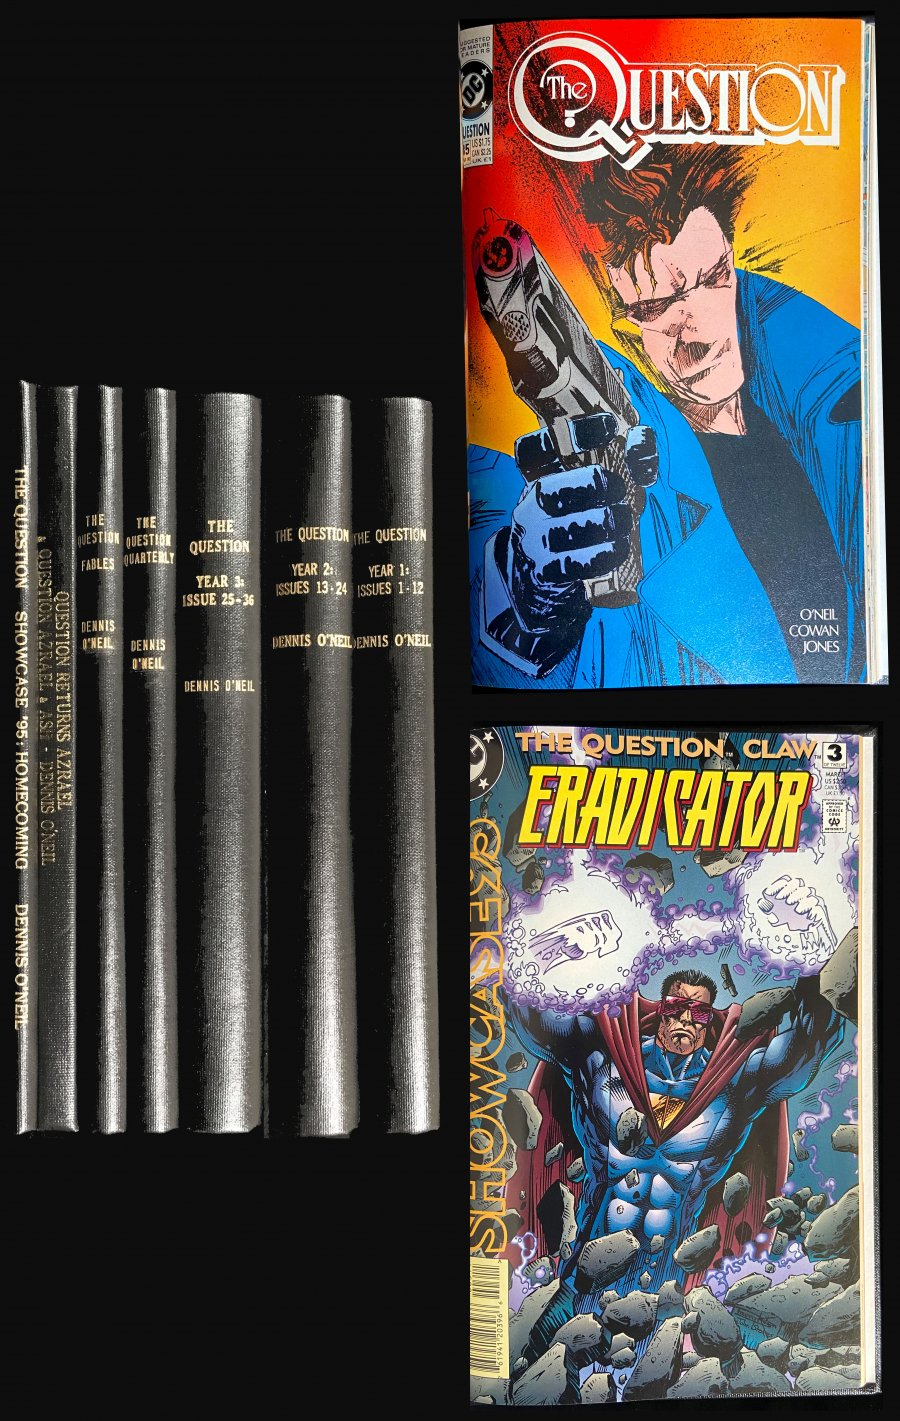 Denny O'Neil comic book artifacts sell for over $33k at auction    GamesRadar+